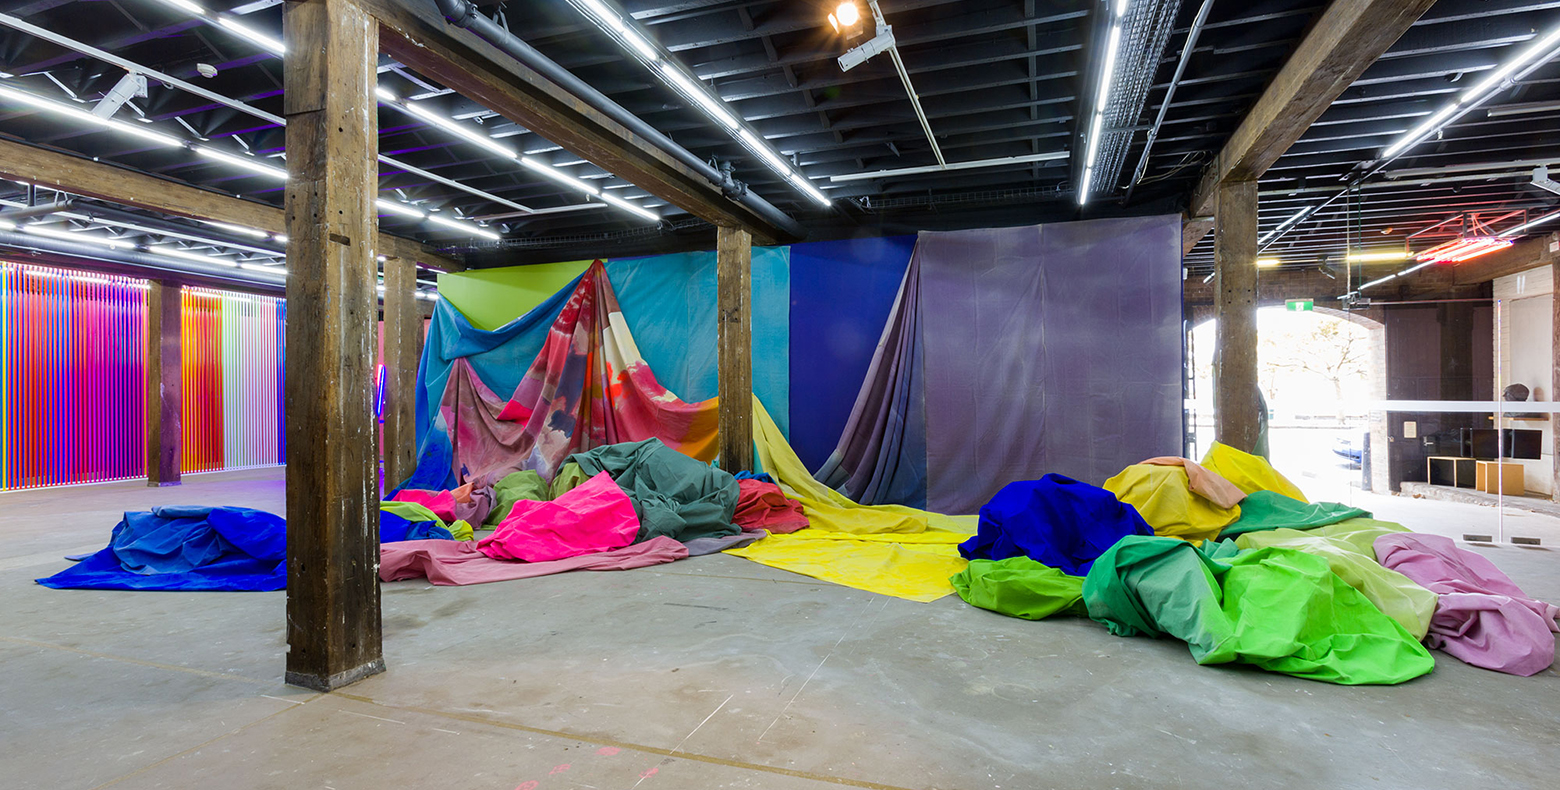 'Superposition of three types', 2017, curated by Talia Linz and Alexie Glass-Kantor, installation view, Artspace, Sydney. Photo: Jessica Maurer